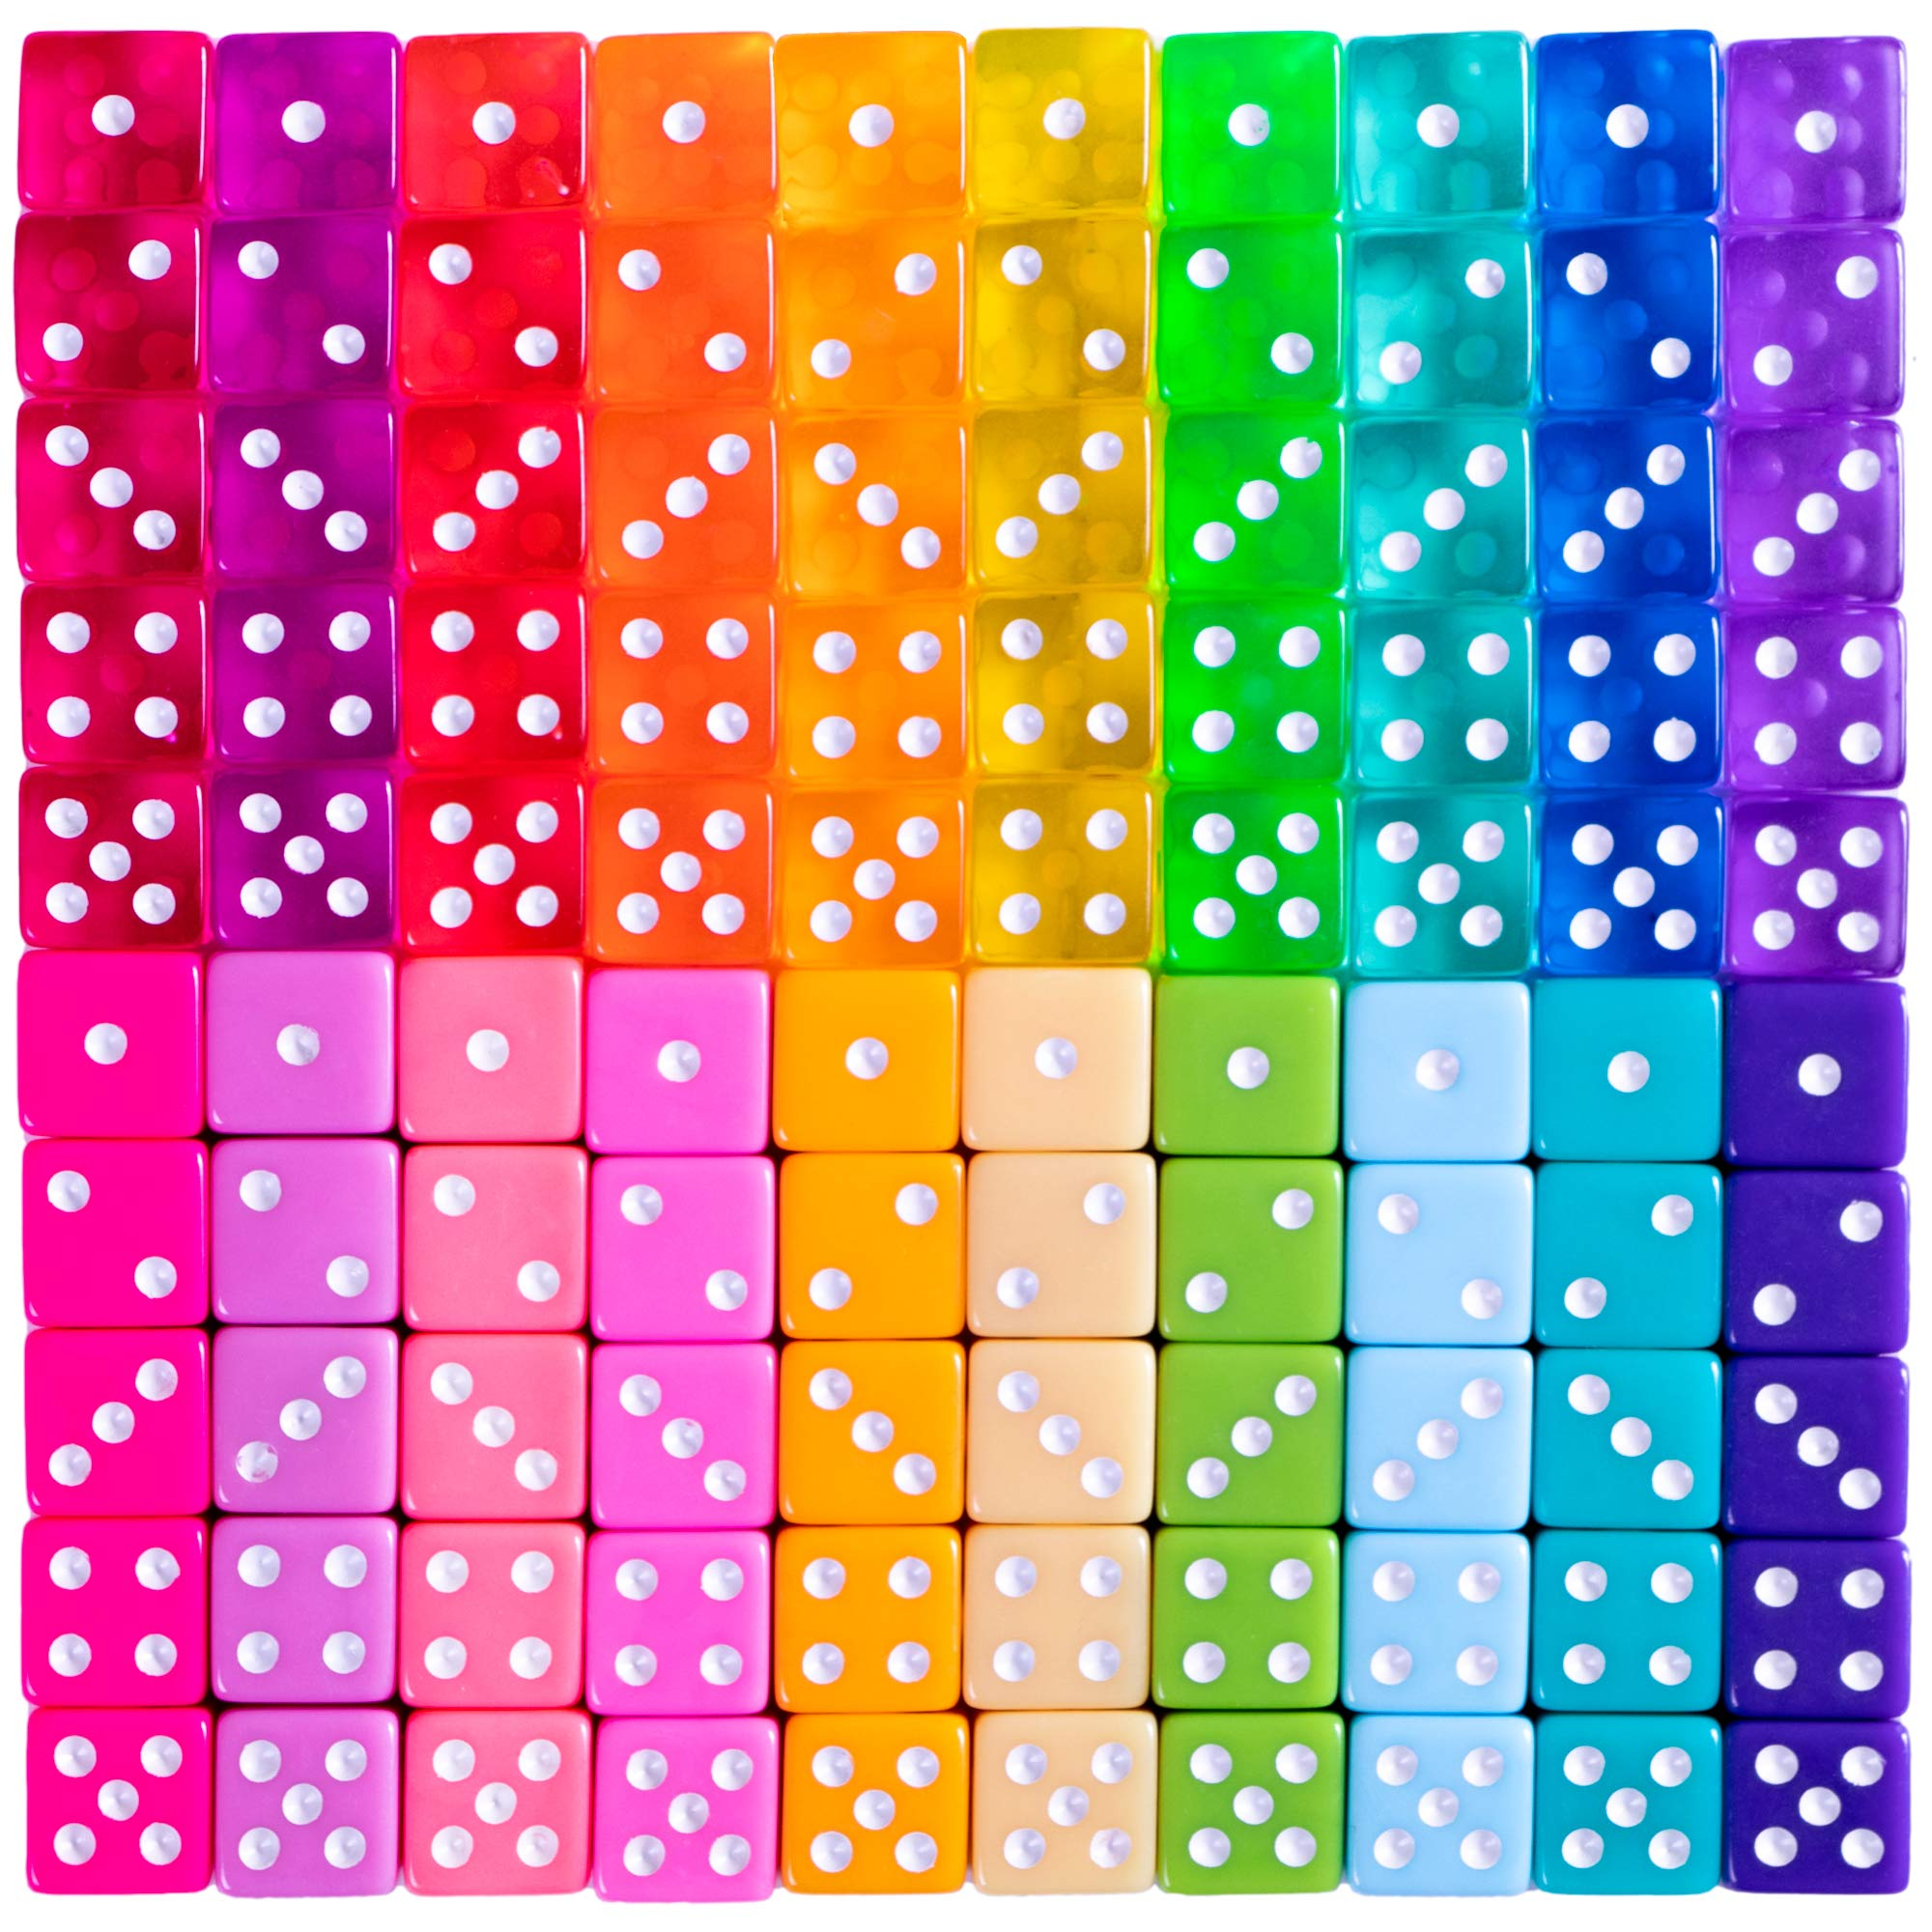 Miami Dice - 100 Retro 80s Translucent & Solid Colored Dice, 16mm Classic Family Pack for Board Games, and Teaching Math